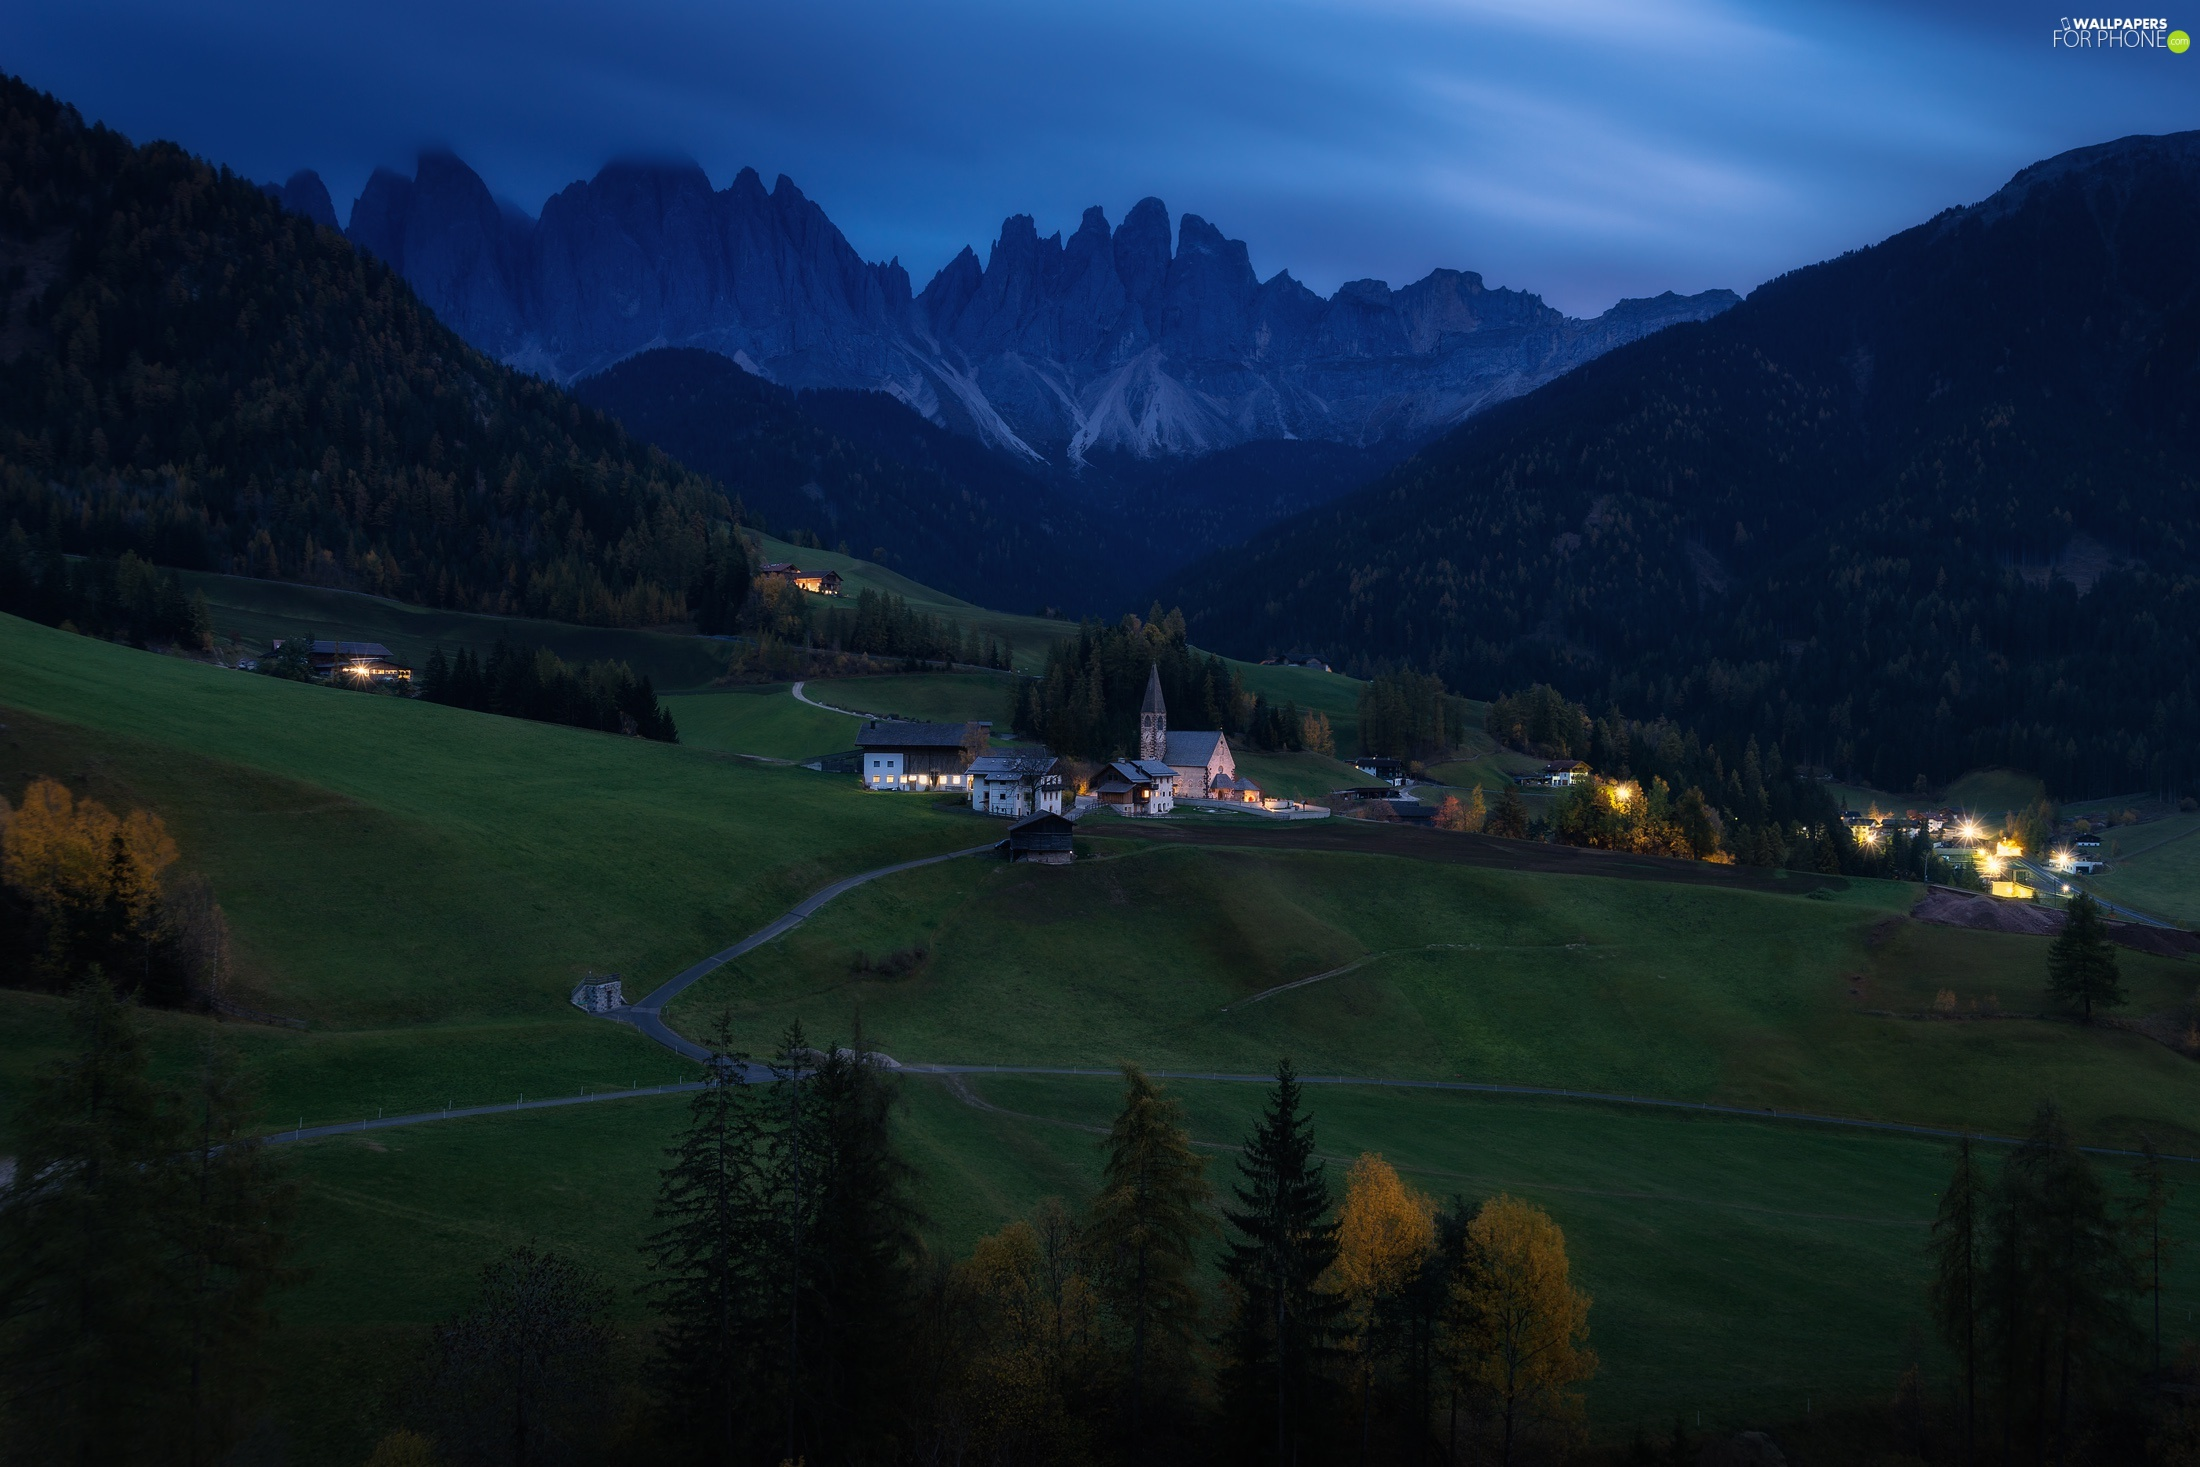 Mountains, Italy, woods, Dolomites, viewes, twilight, Church, Village of Santa Maddalena, Val di Funes Valley, Houses, trees